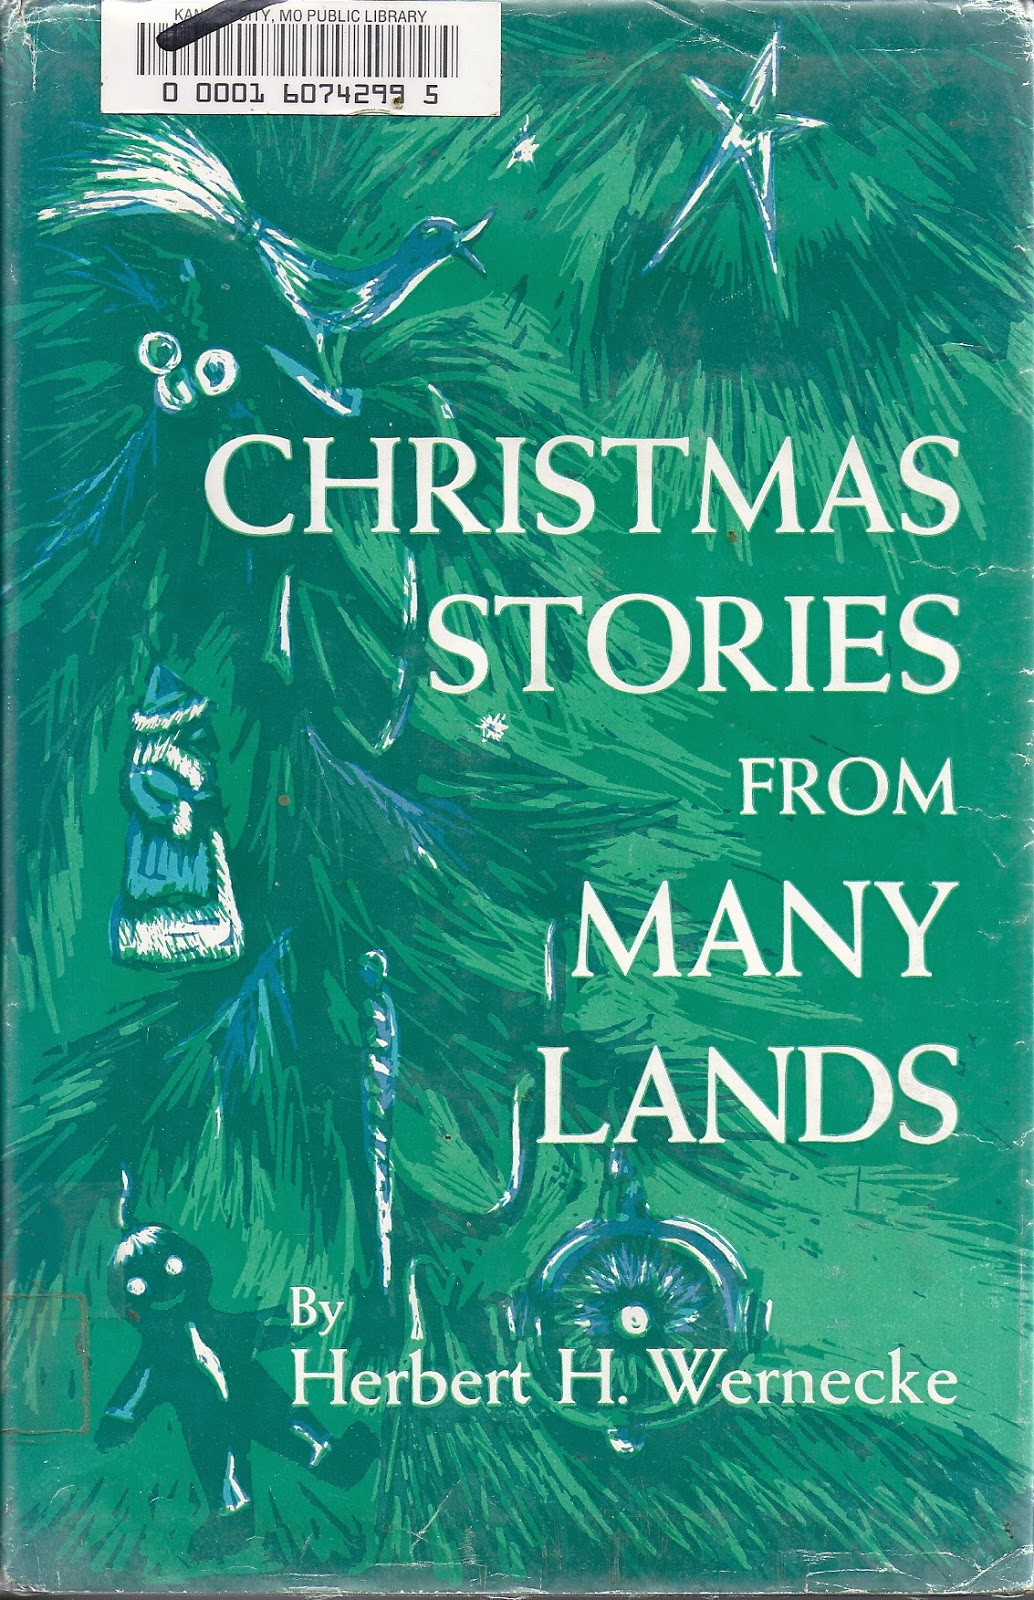 Uncategorized Christmas Stories From Around The World merry and bright december 2012 used record stores the other christmas music sharity sites have provided a bounty of recordings highlighting musical celebrations from other